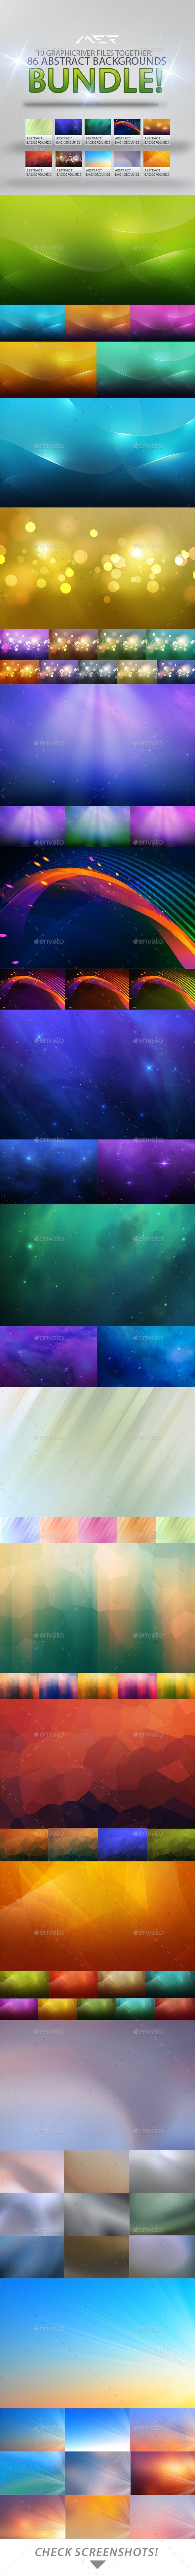 86 Abstract Backgrounds Bundle - Abstract Backgrounds